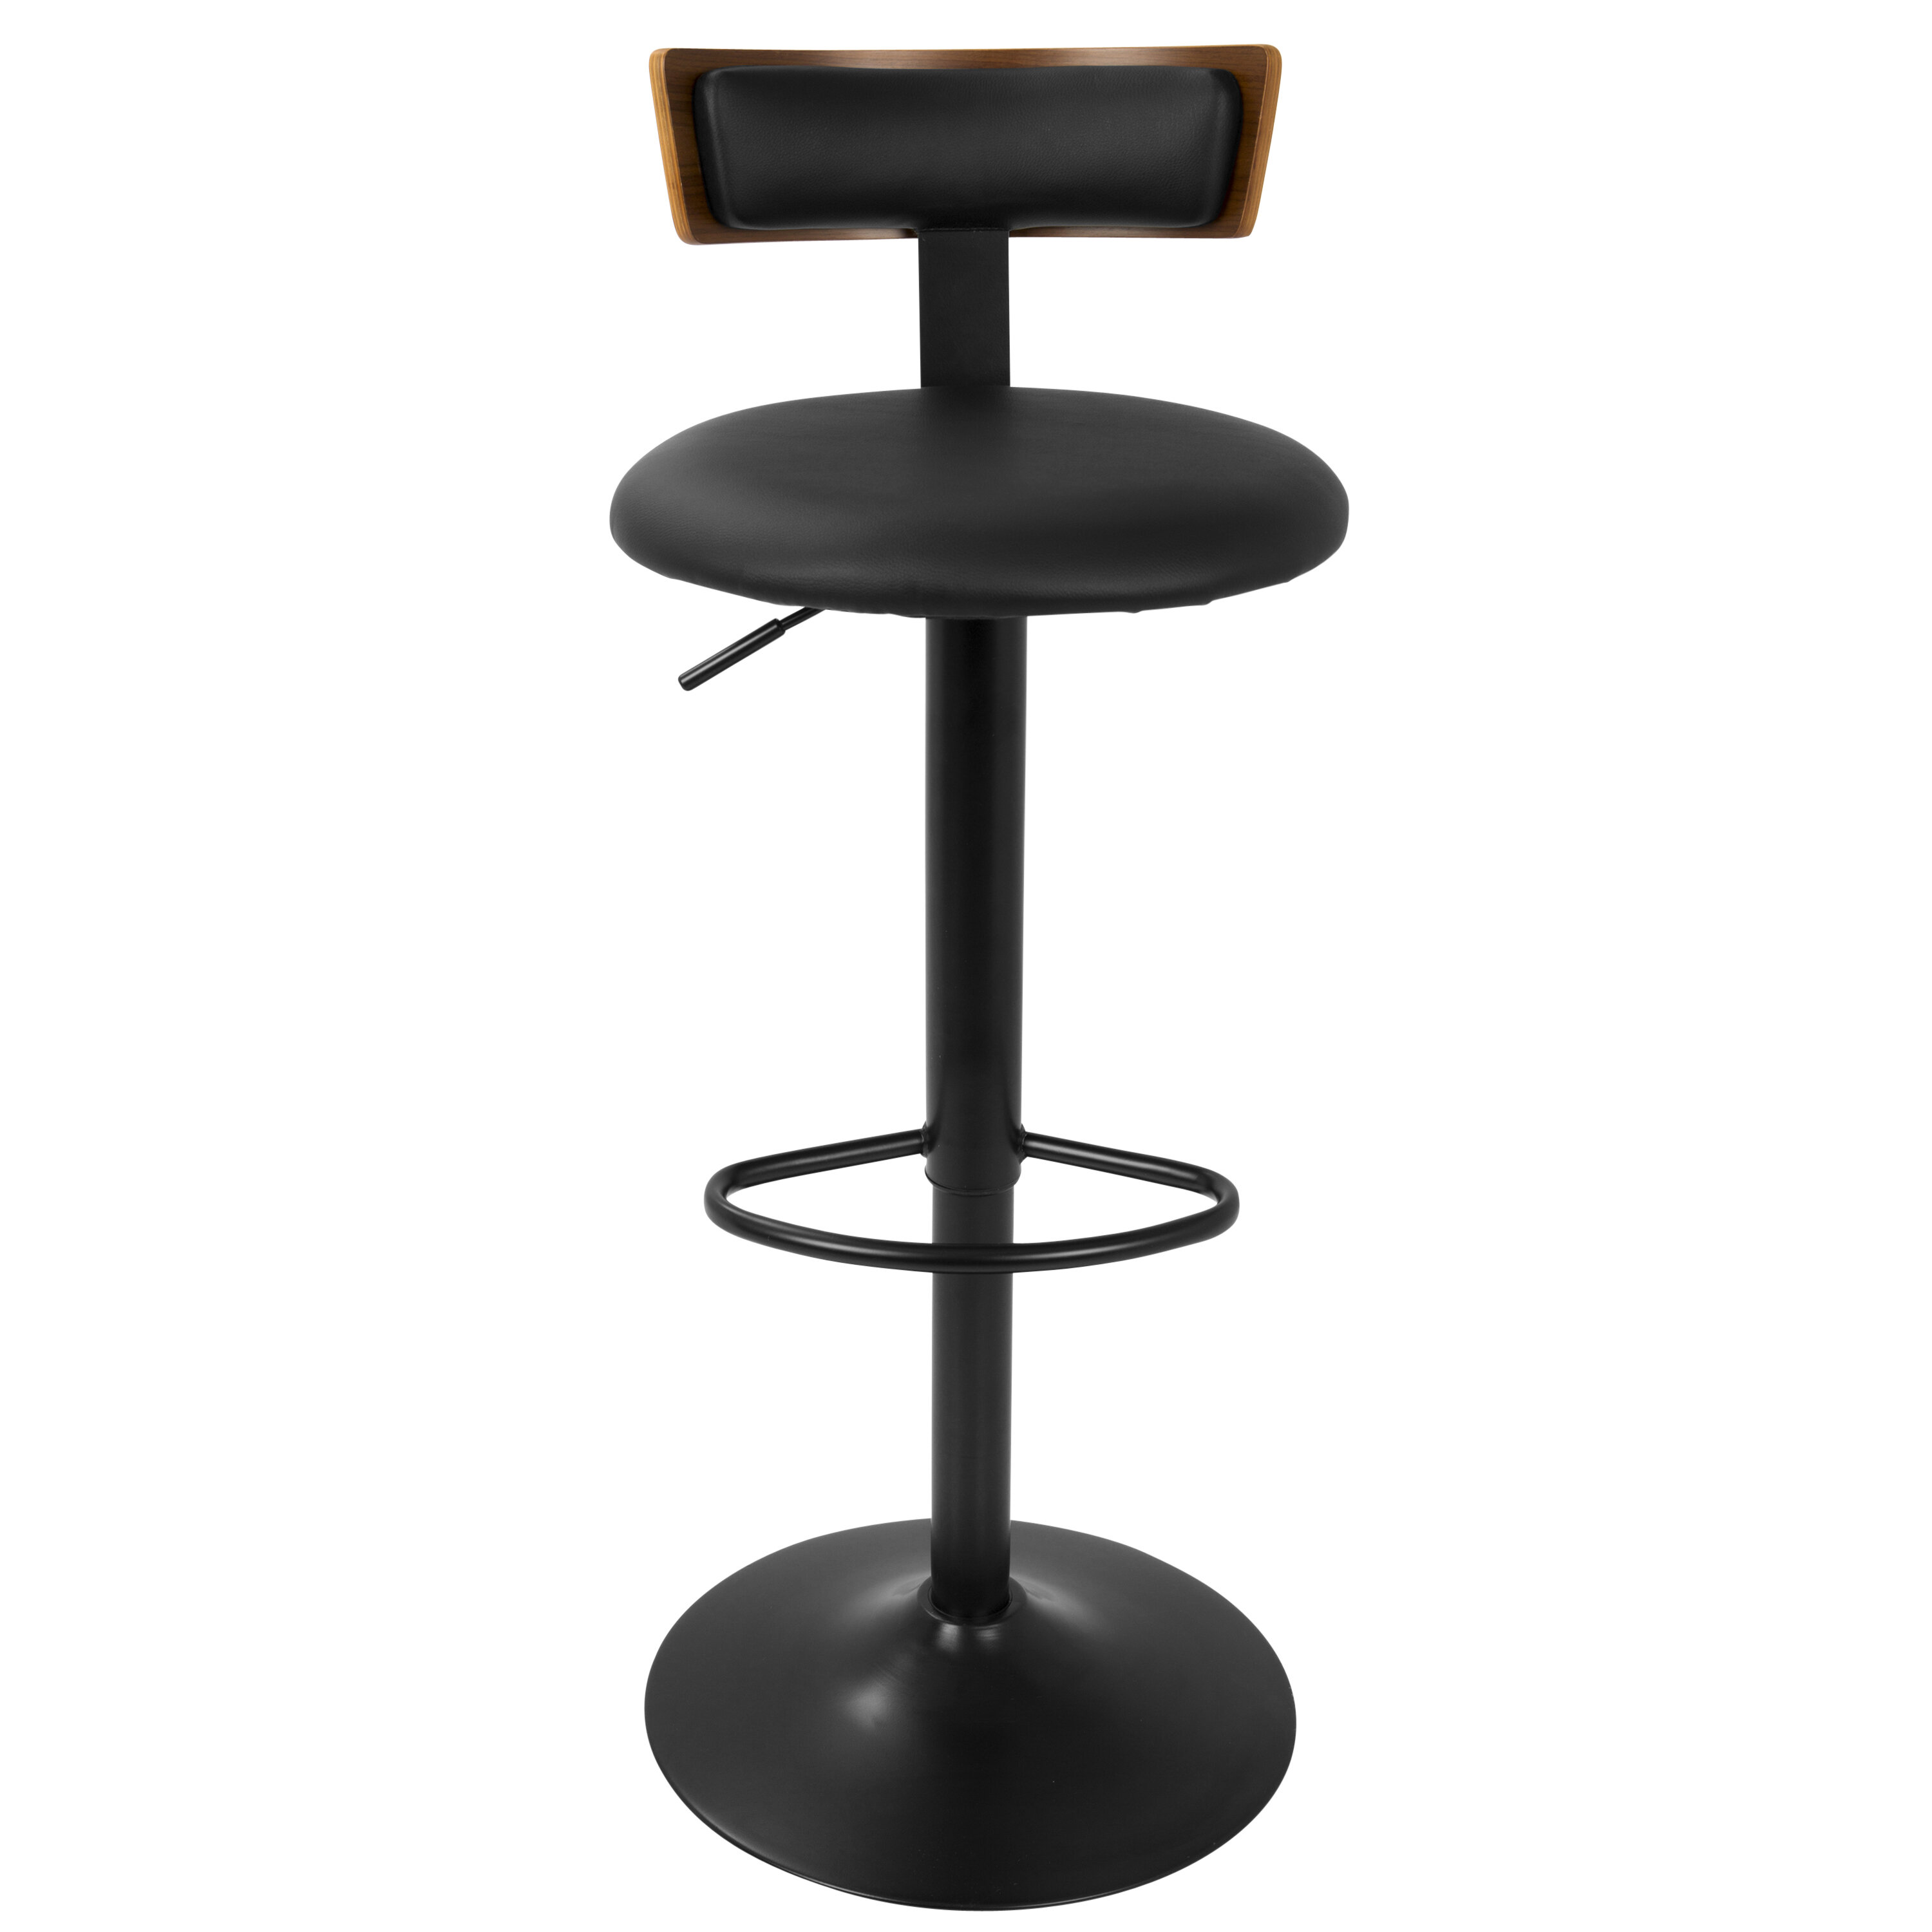 Remarkable Tyner Adjustable Height Swivel Bar Stool Unemploymentrelief Wooden Chair Designs For Living Room Unemploymentrelieforg